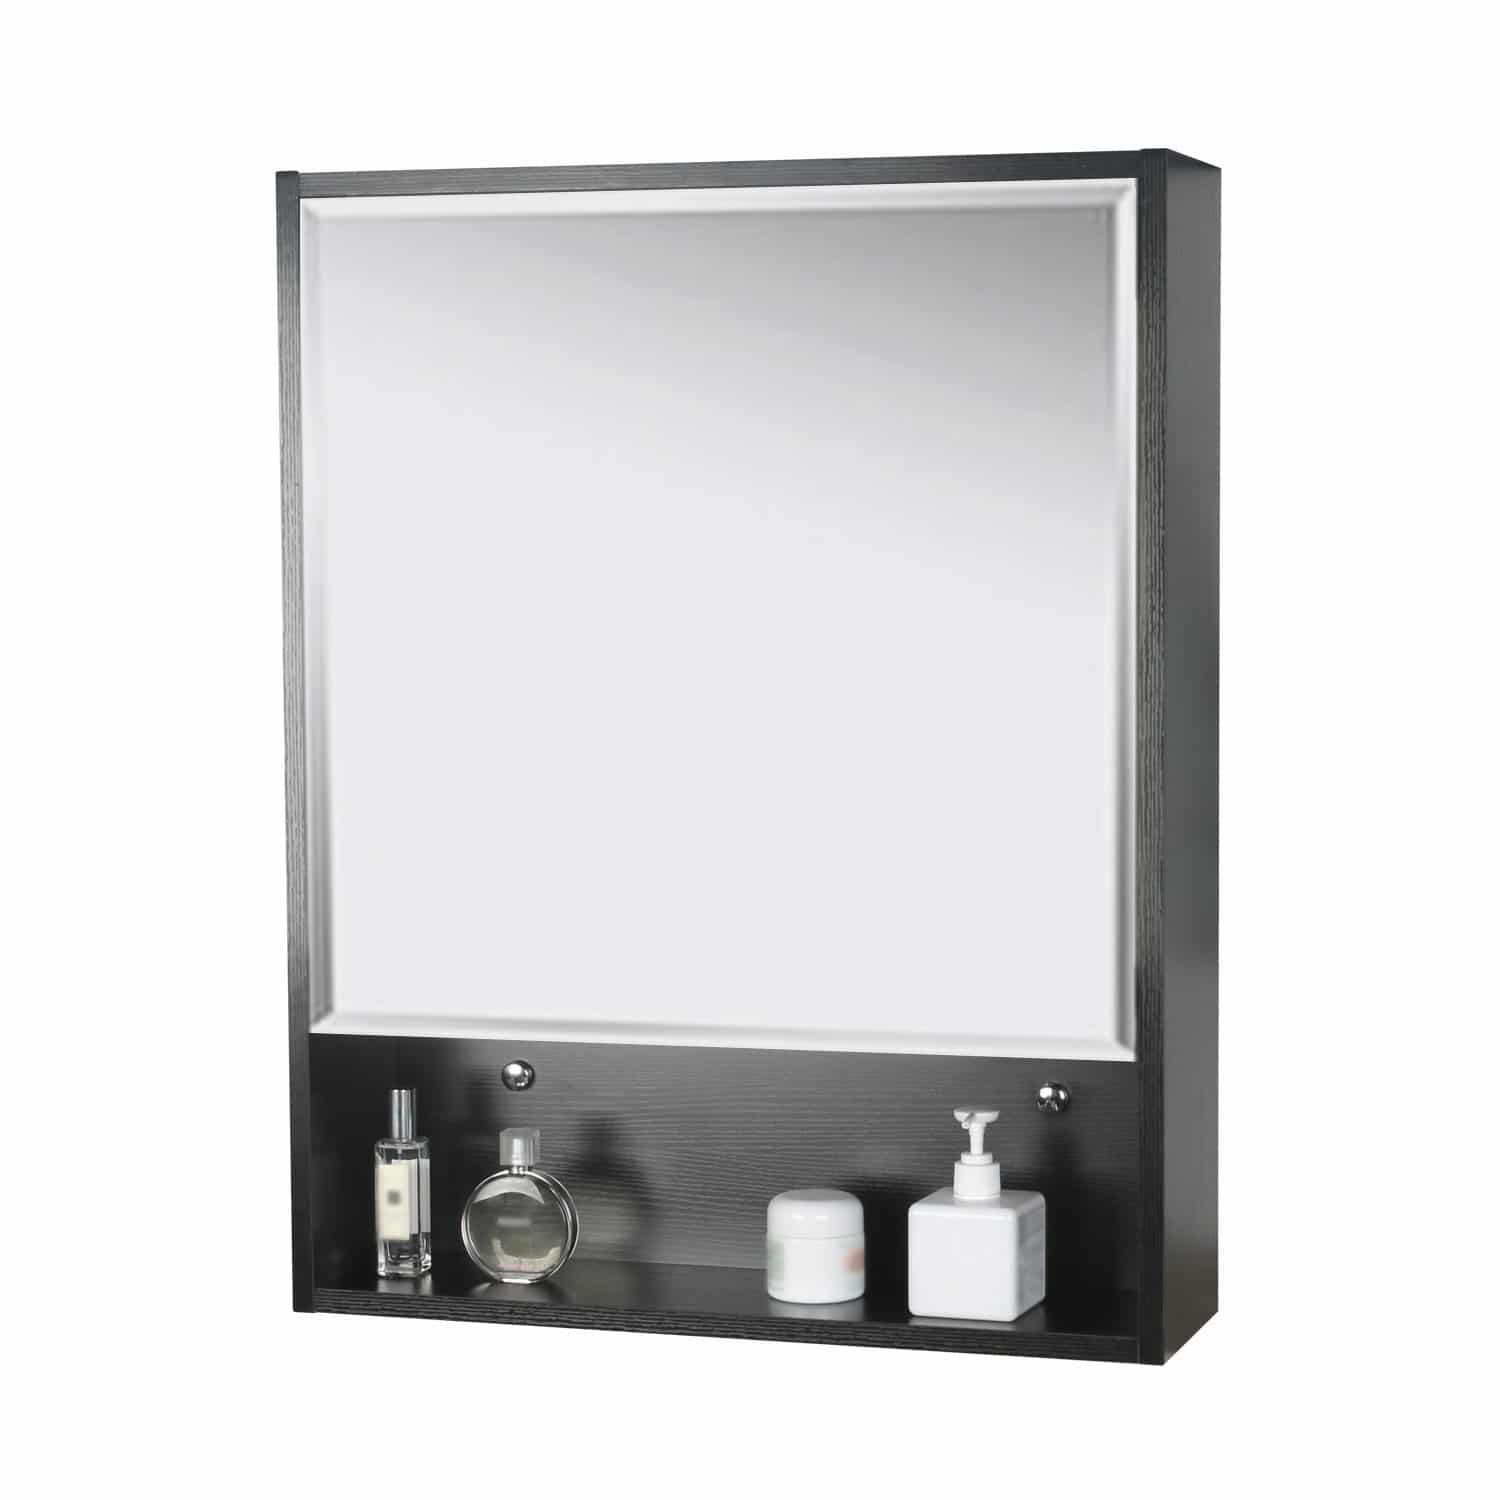 Top 10 Best Mirror Medicine Cabinets In 2020 Topreviewproducts